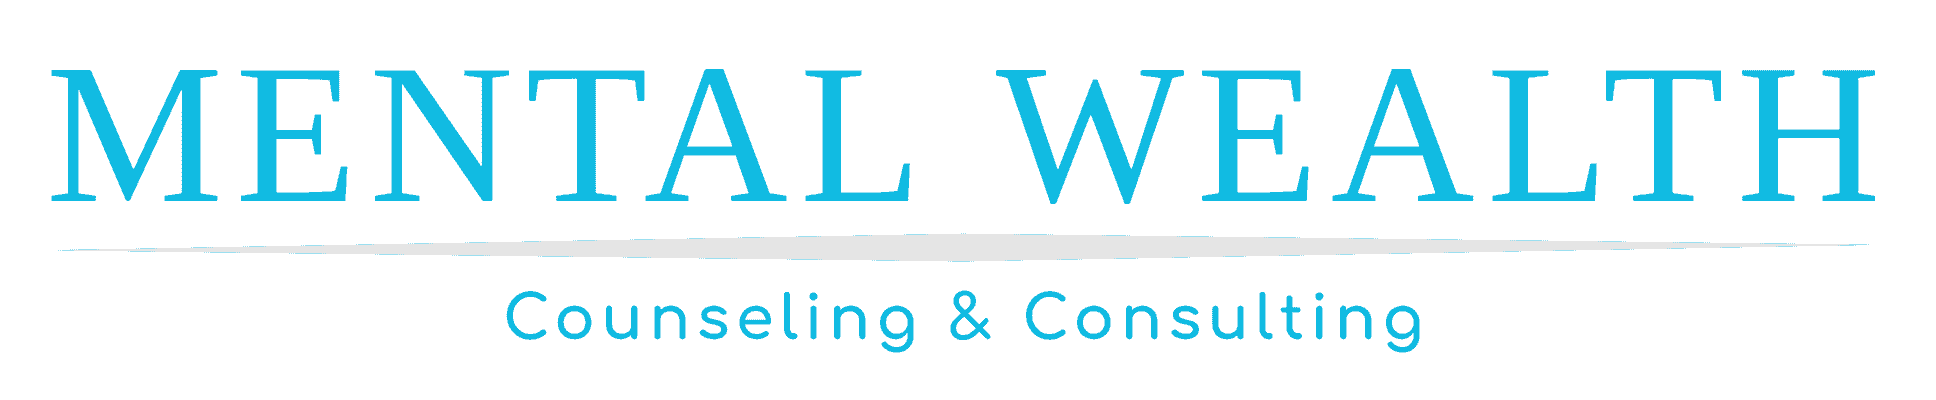 MENTAL WEALTH Counseling & Consulting